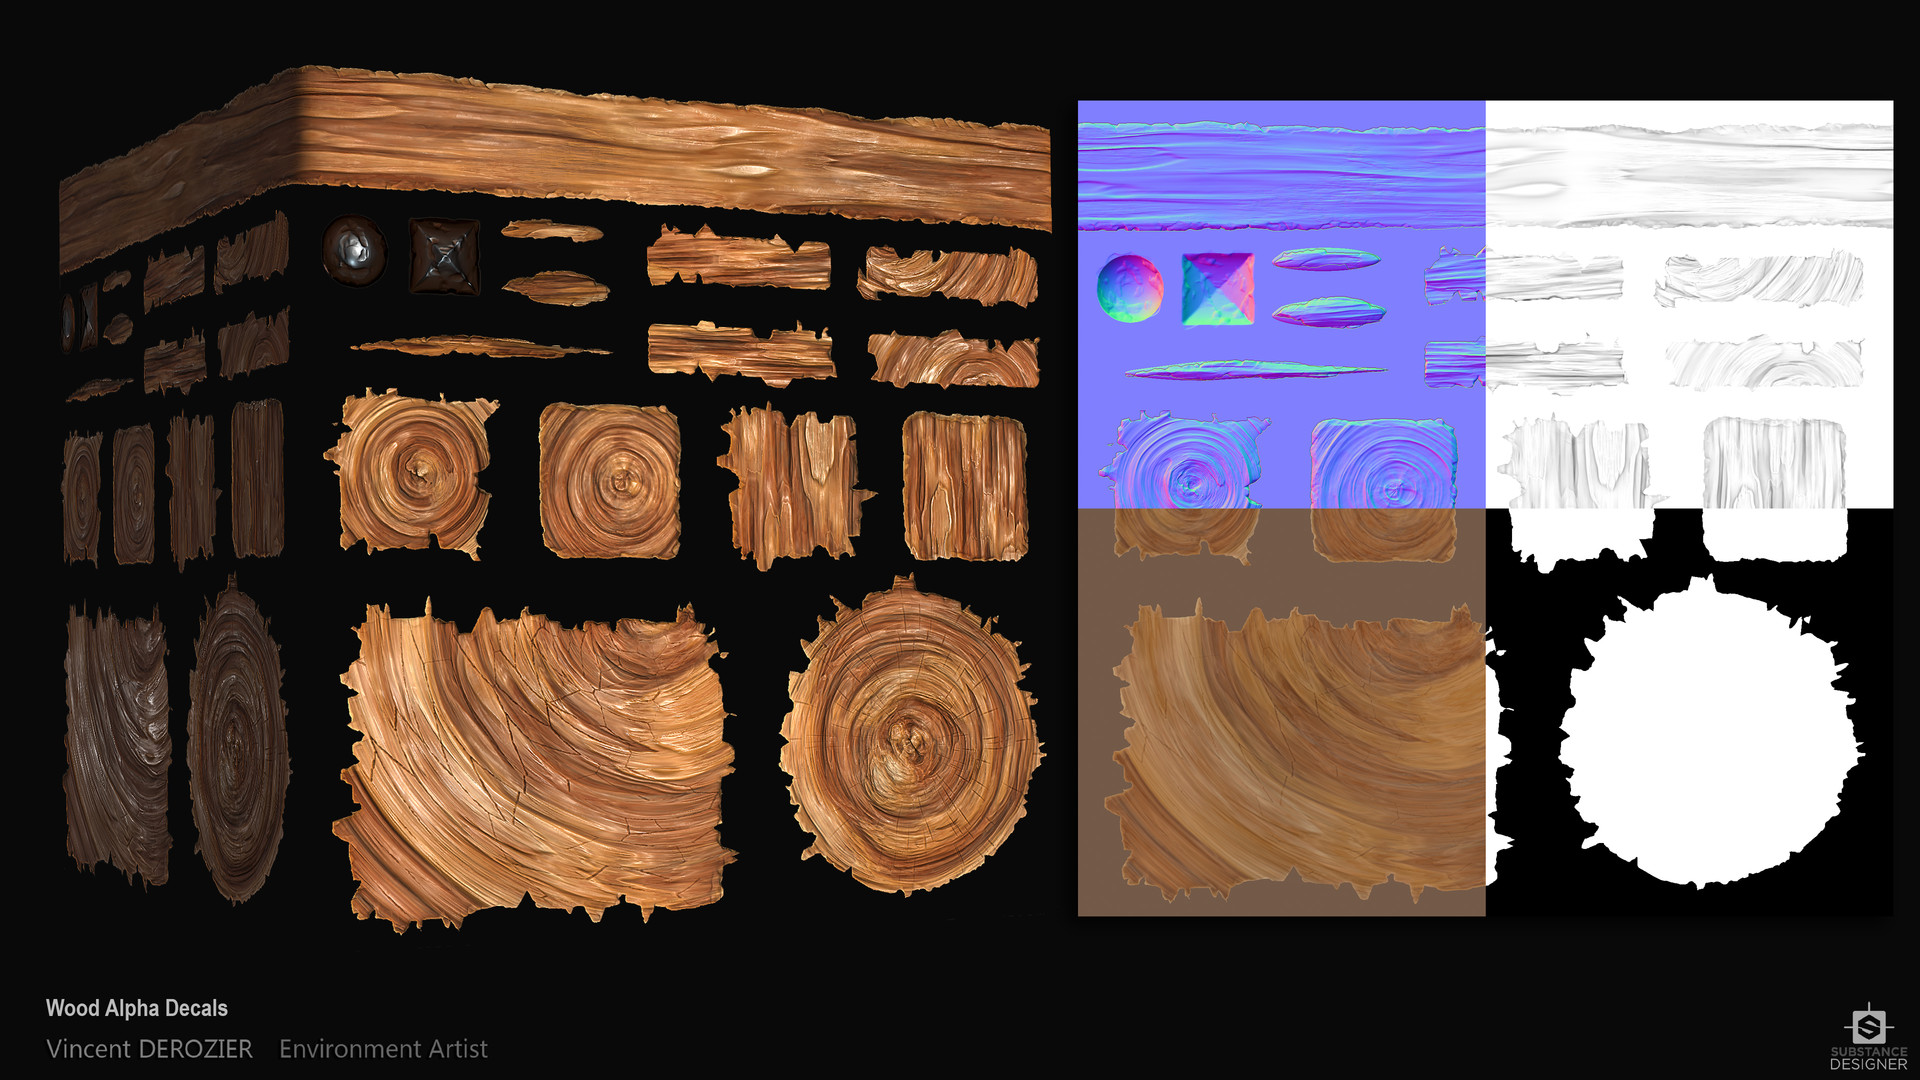 Vincent derozier wood decals render02